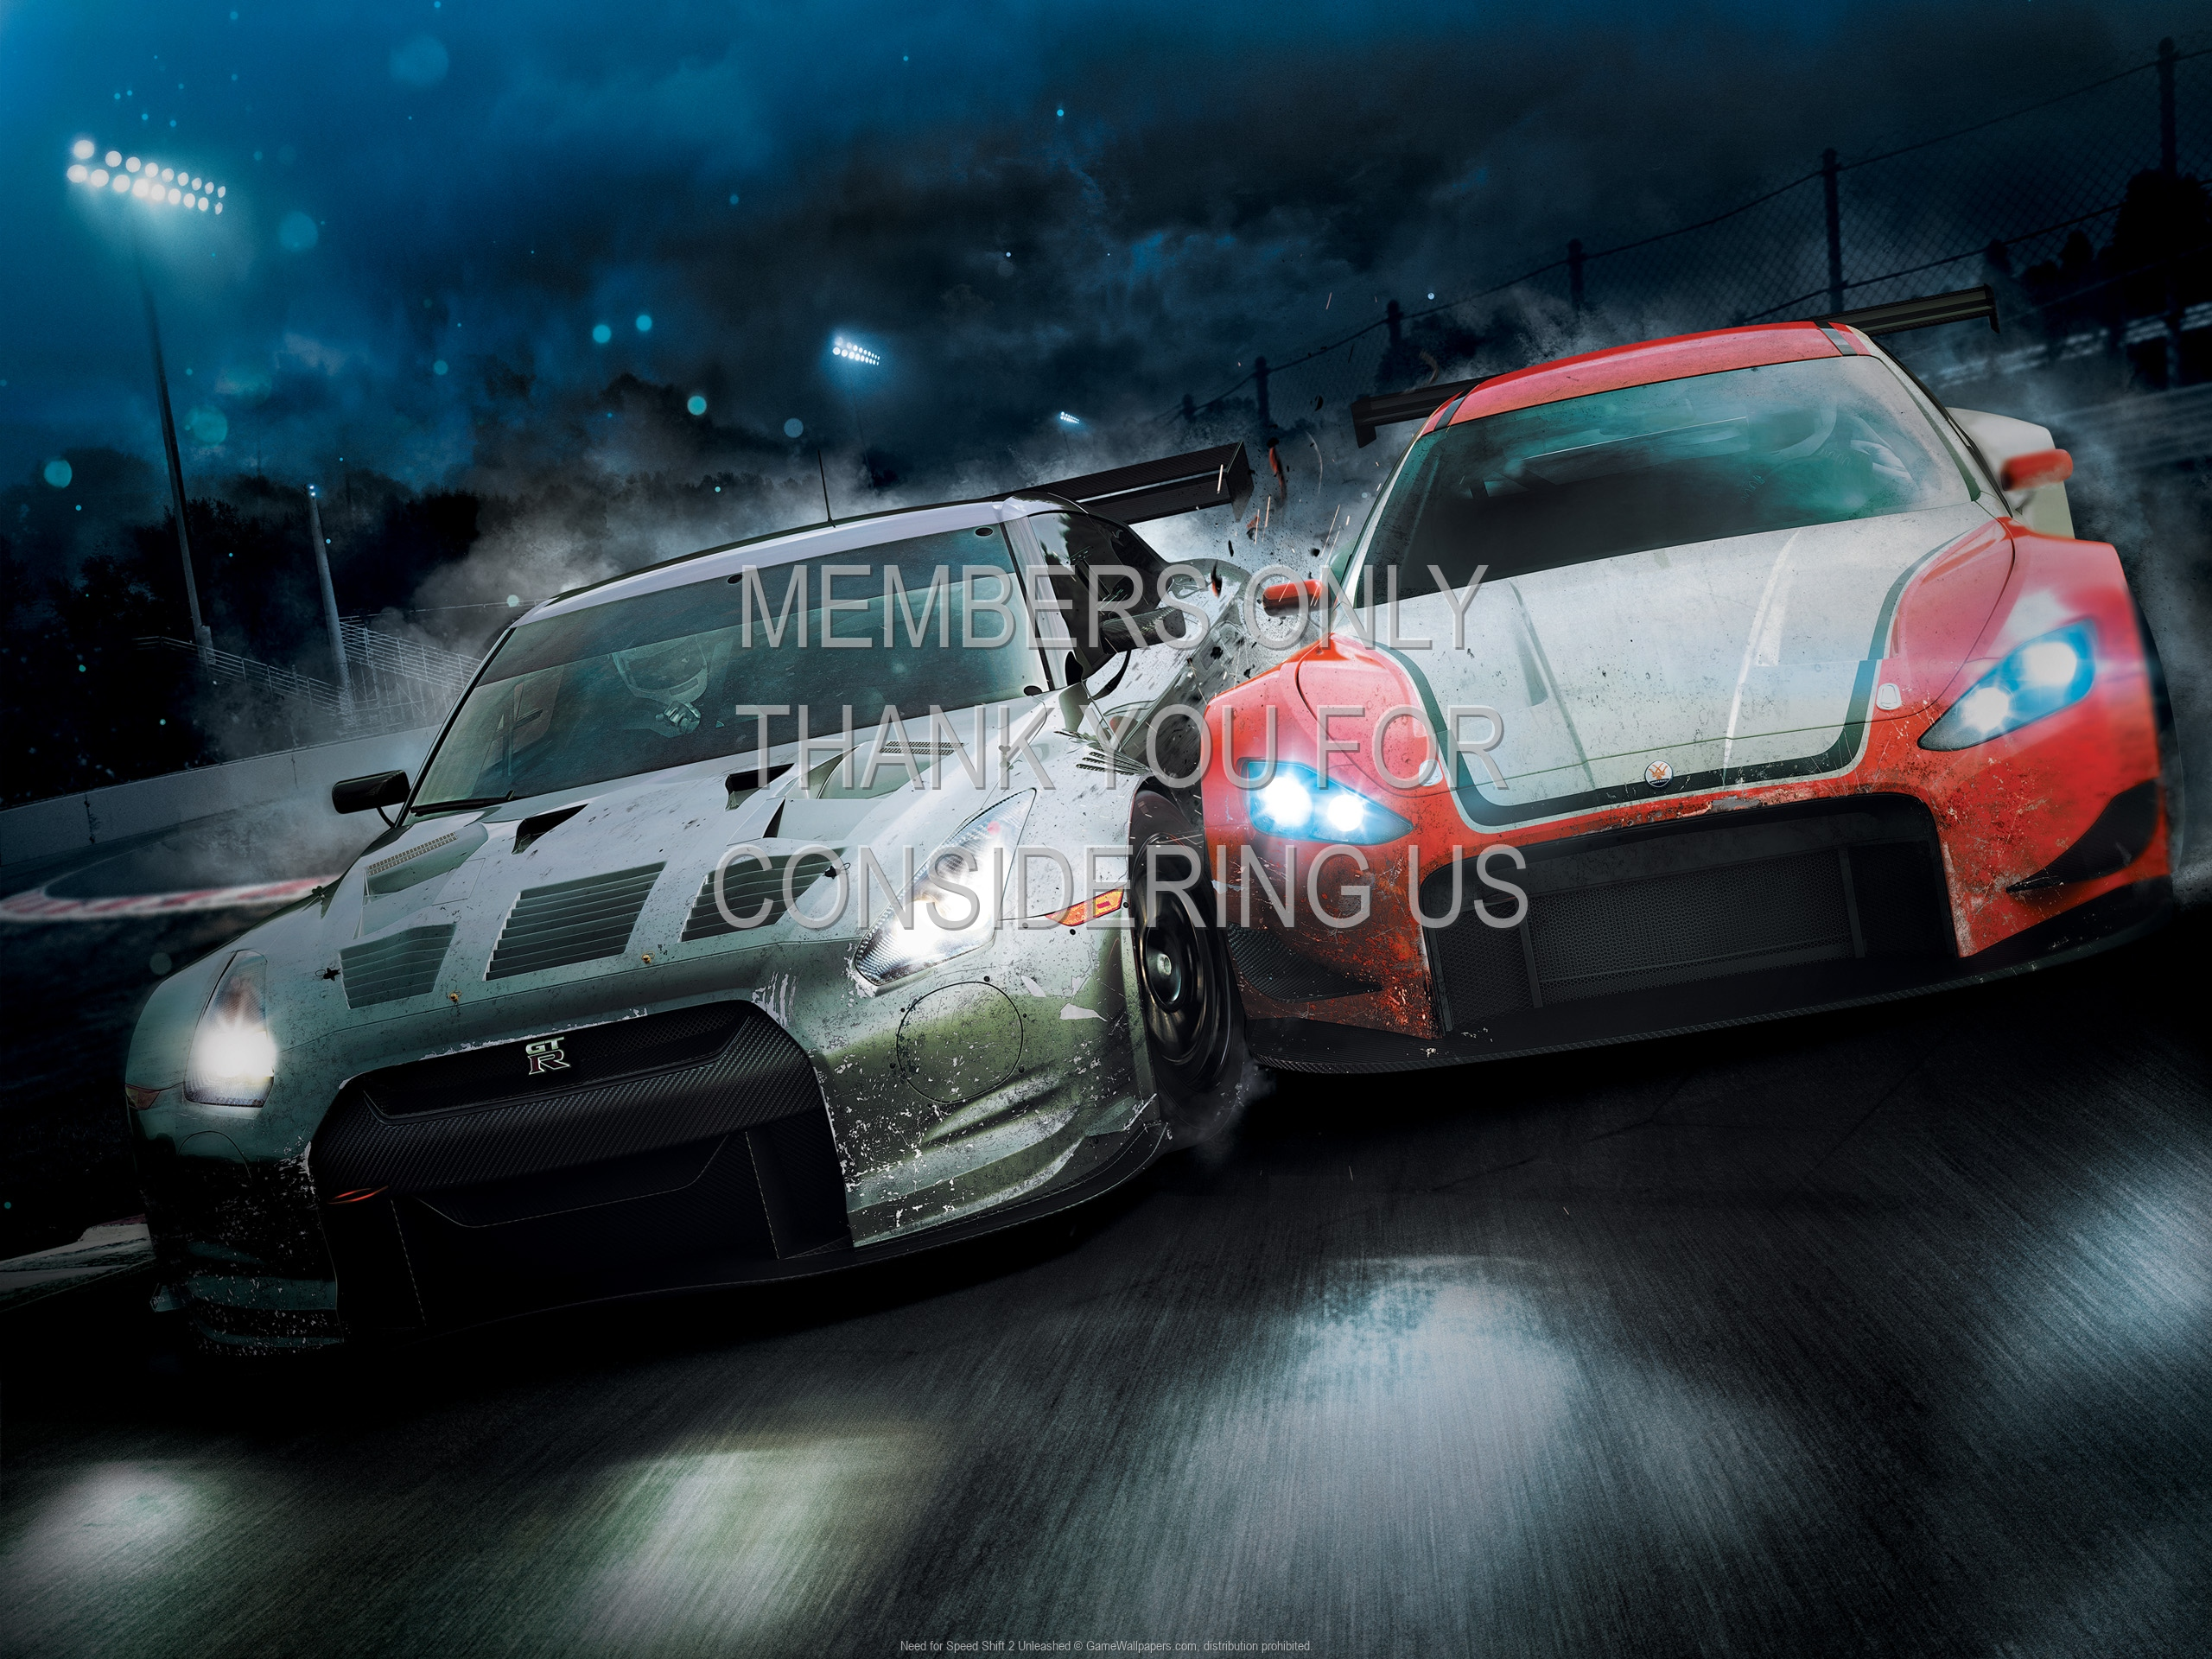 Need for Speed: Shift 2 Unleashed 1920x1080 Mobiele achtergrond 01